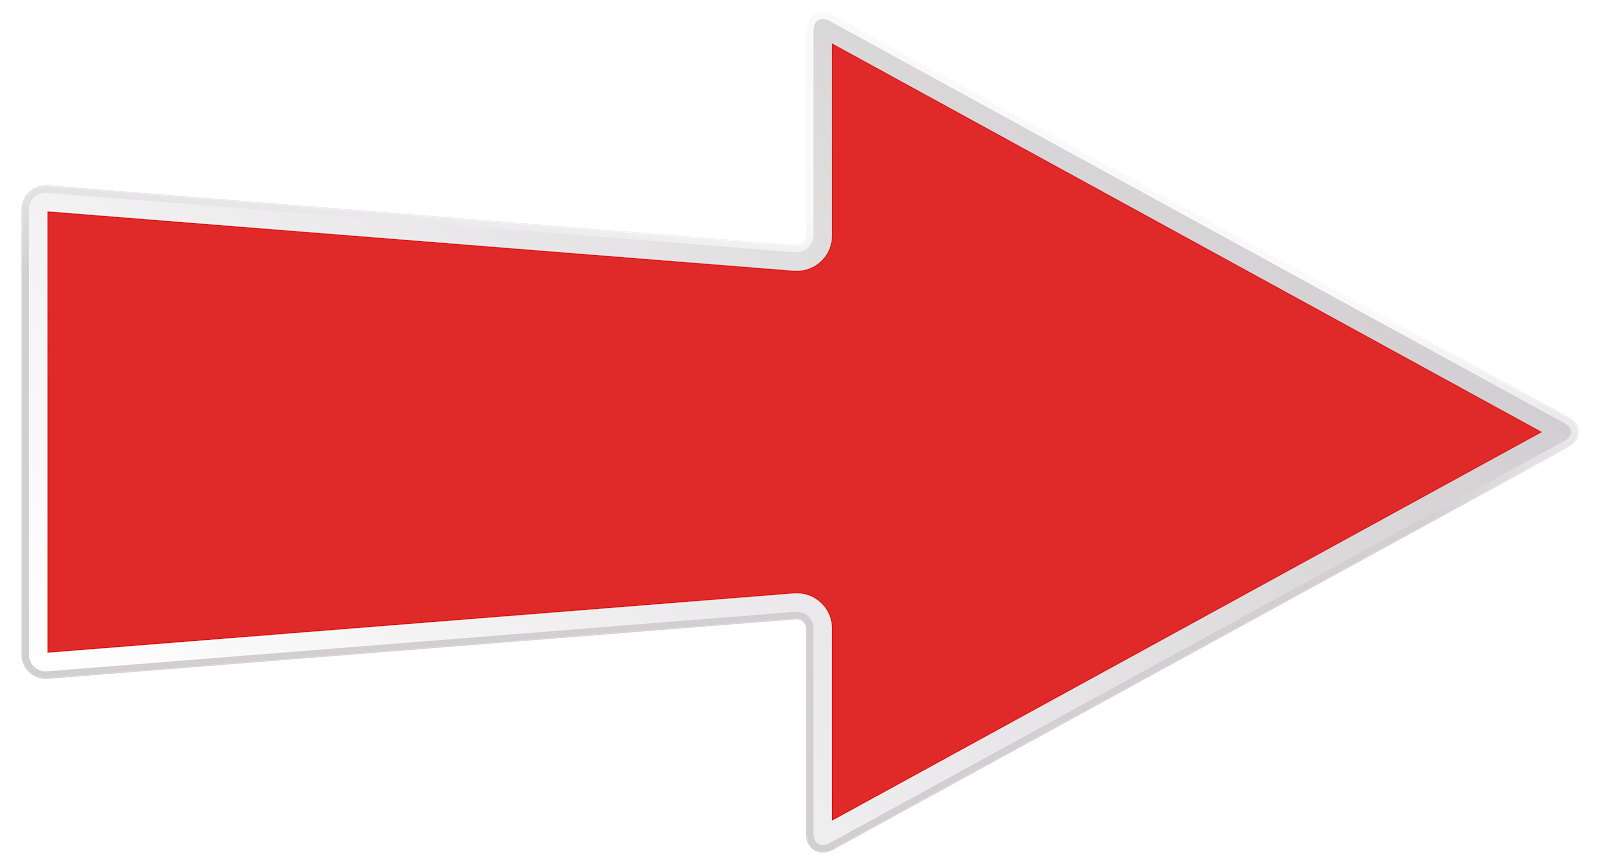 cedrone tocci right arrow red png #9186